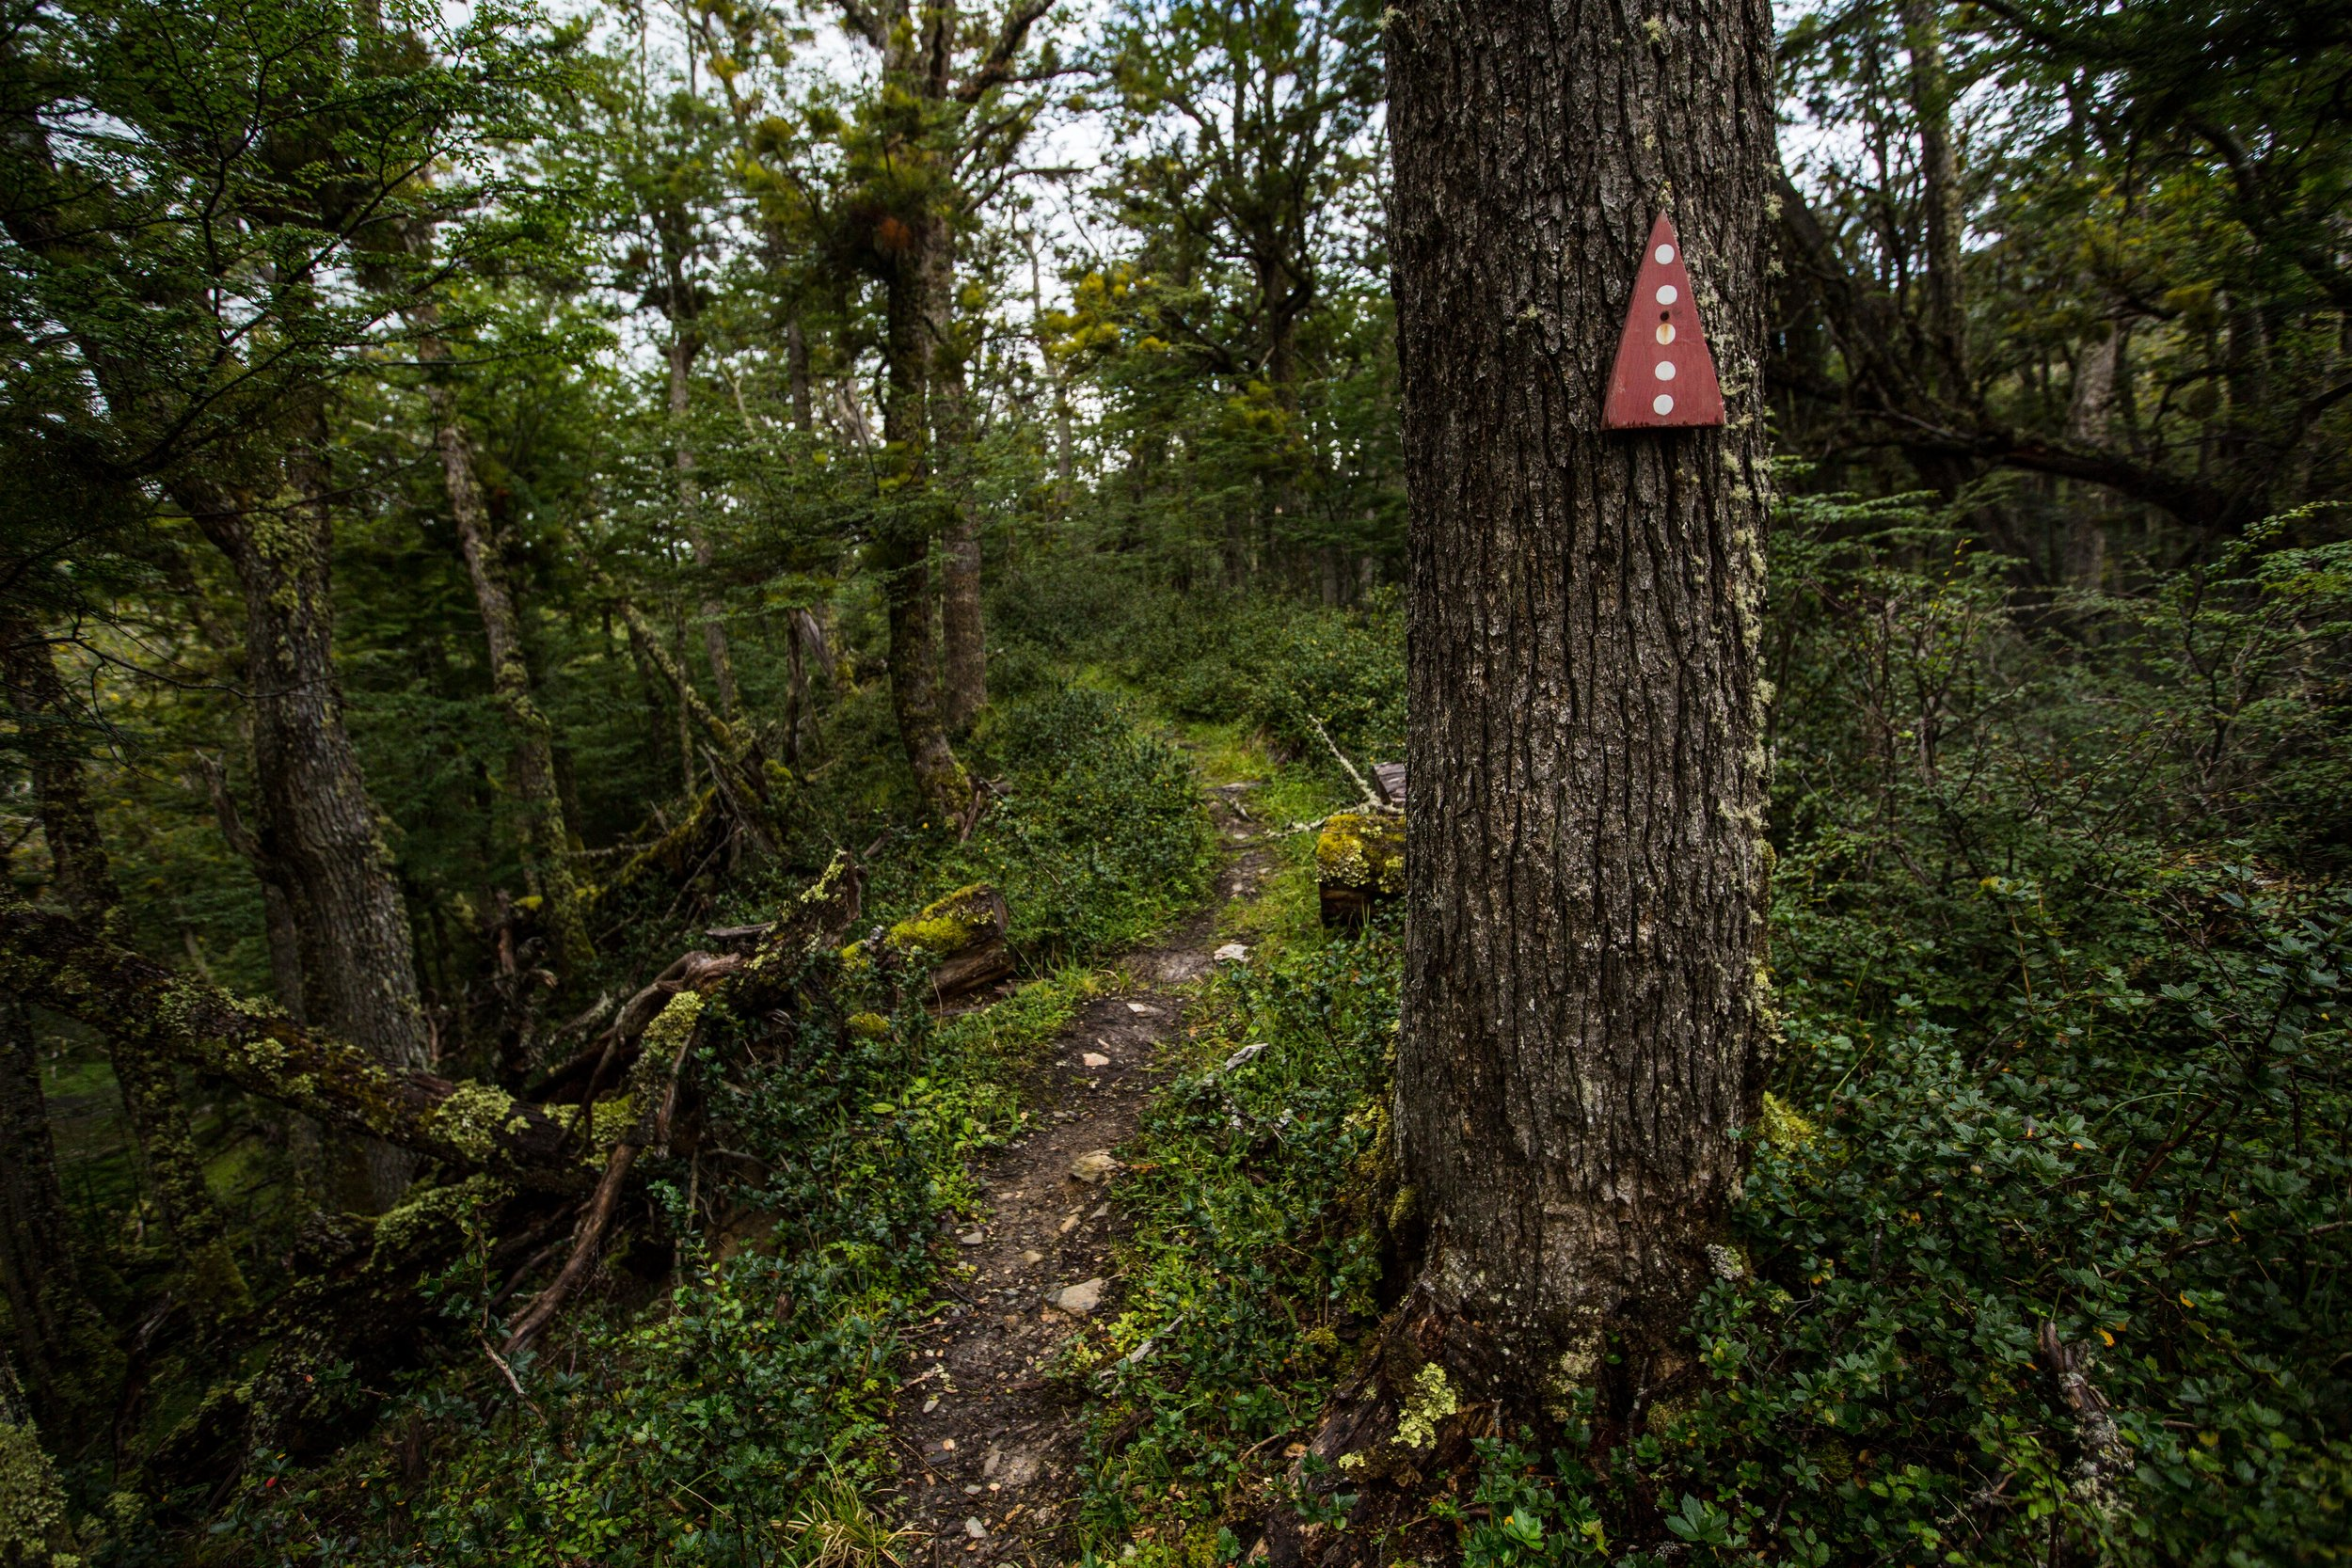 Paciencia trail - One of the trail markers of the Paciencia trail. It uses the colors and symbols of the Selk'nam people who lived in the area. The name Karukinka is of Selk'nam origin as well, meaning